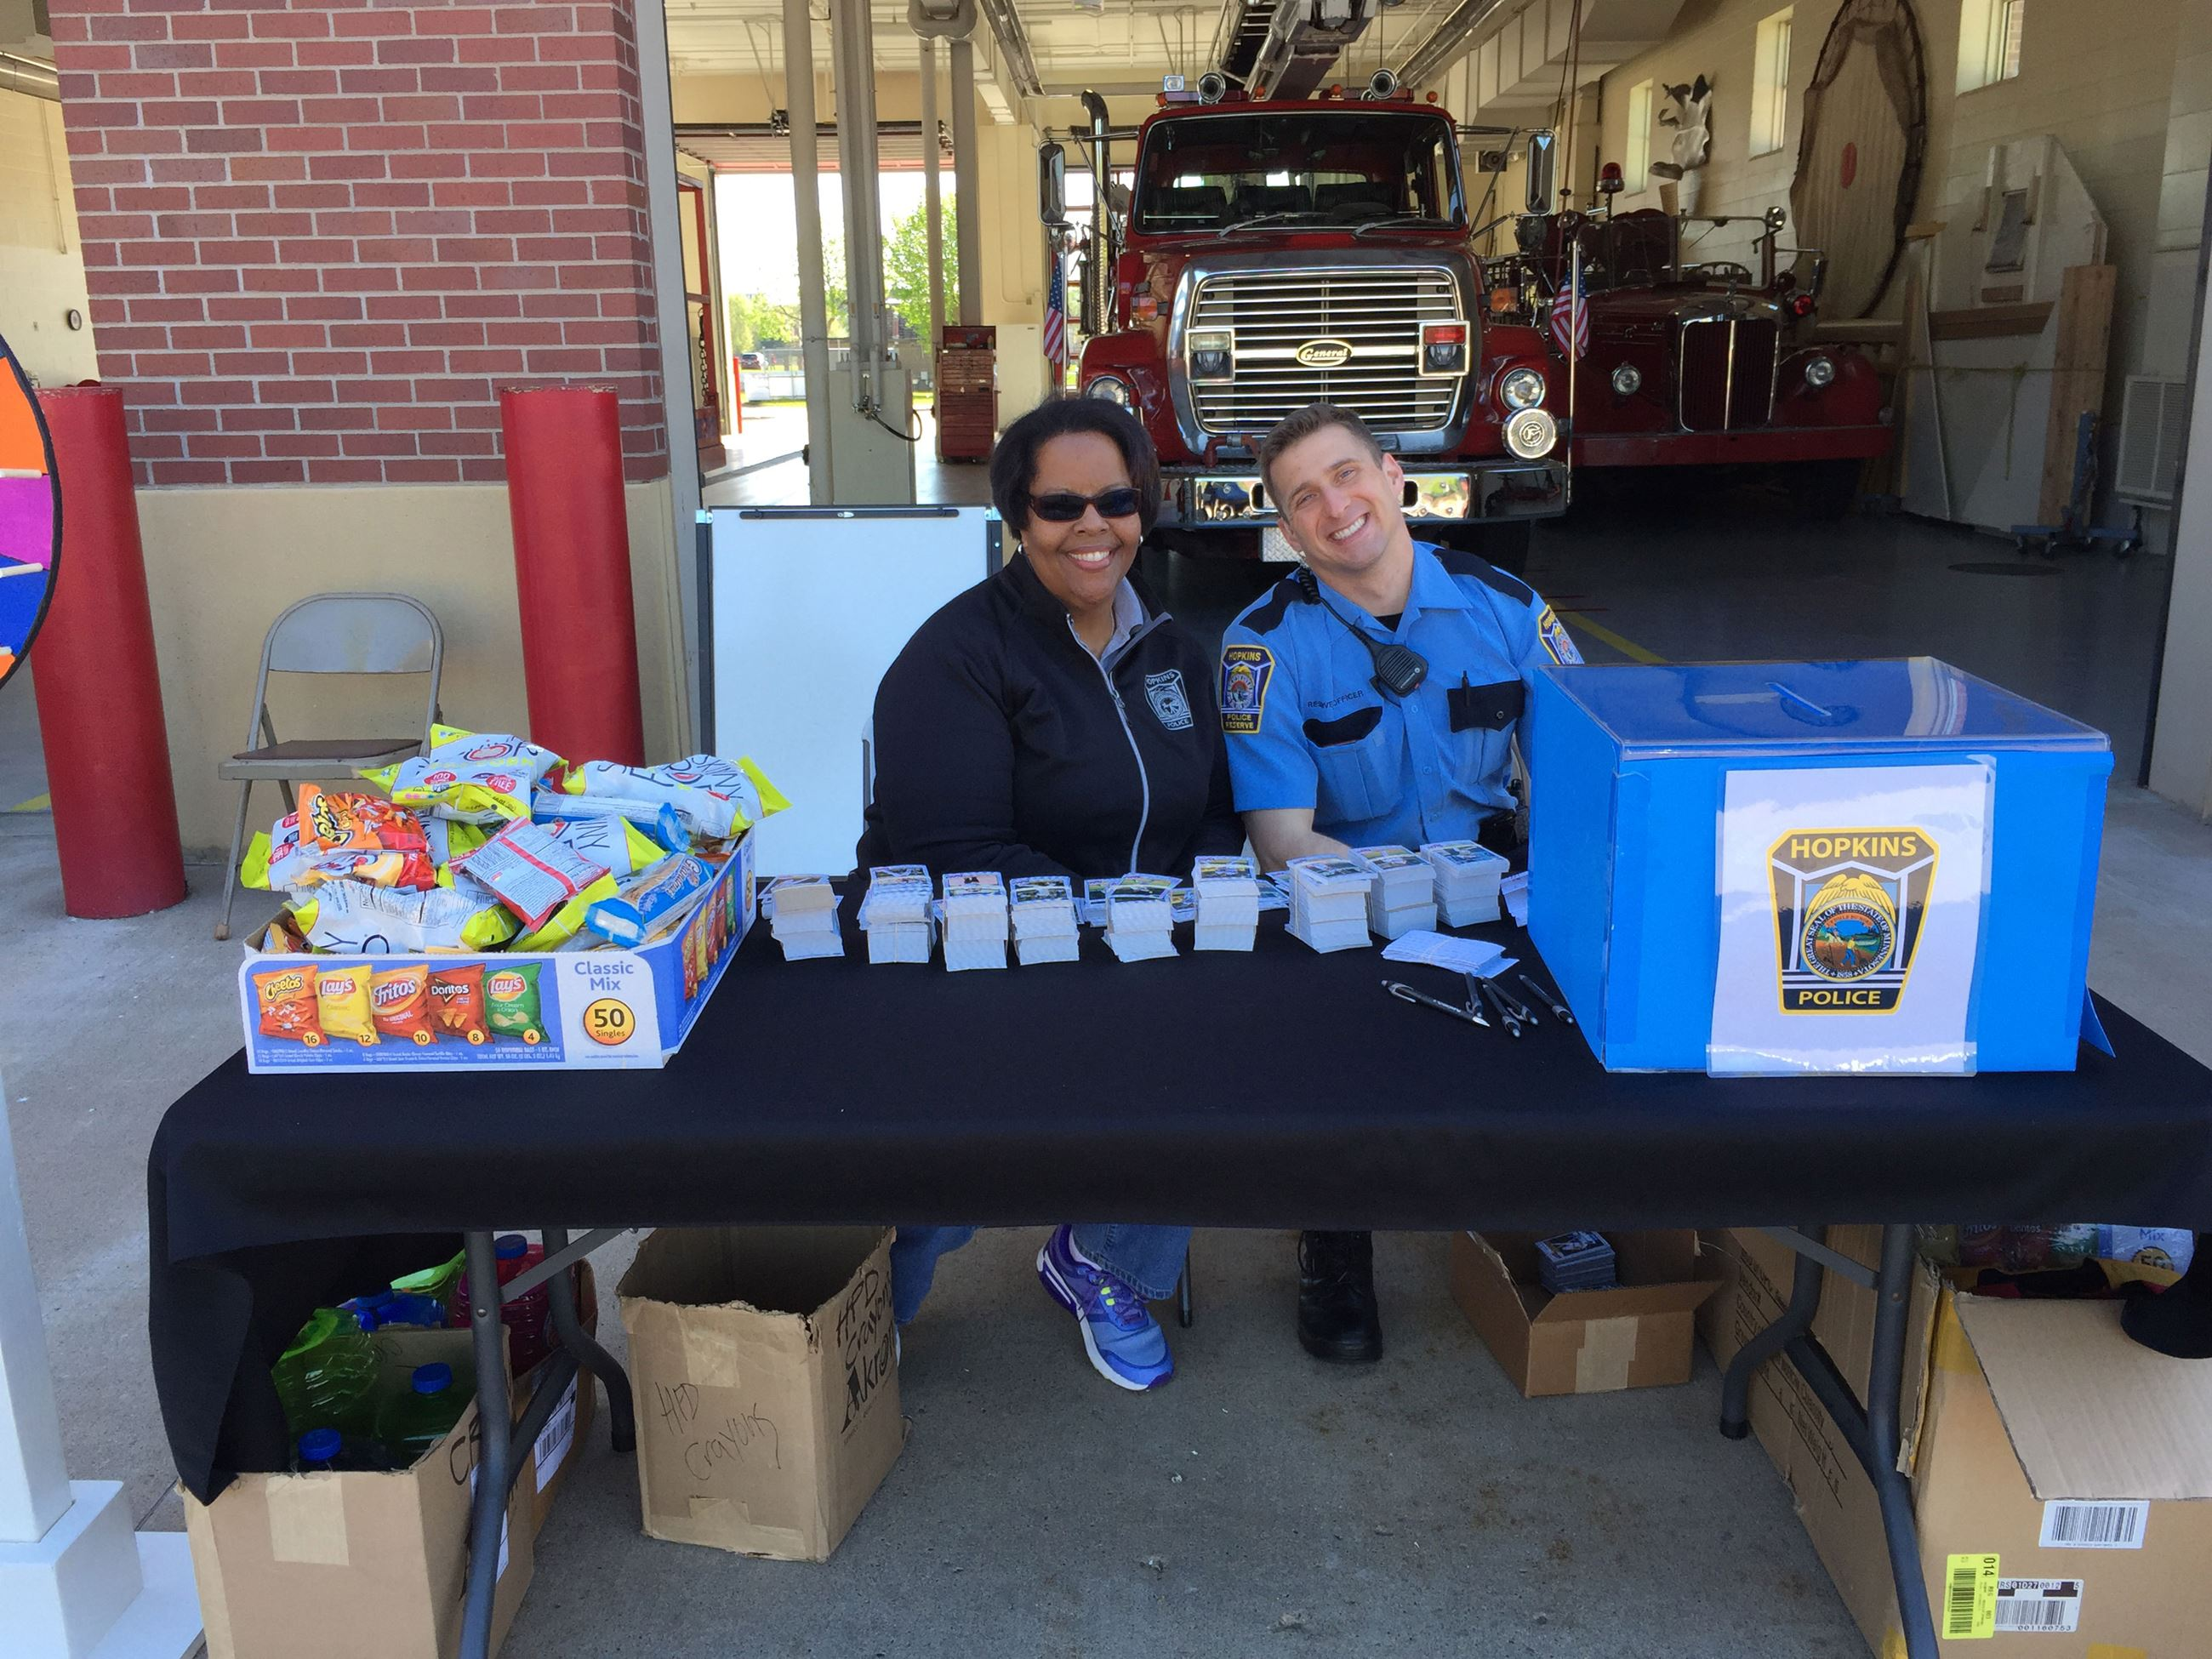 Police Reserves Helping in the Community at Fire Open House